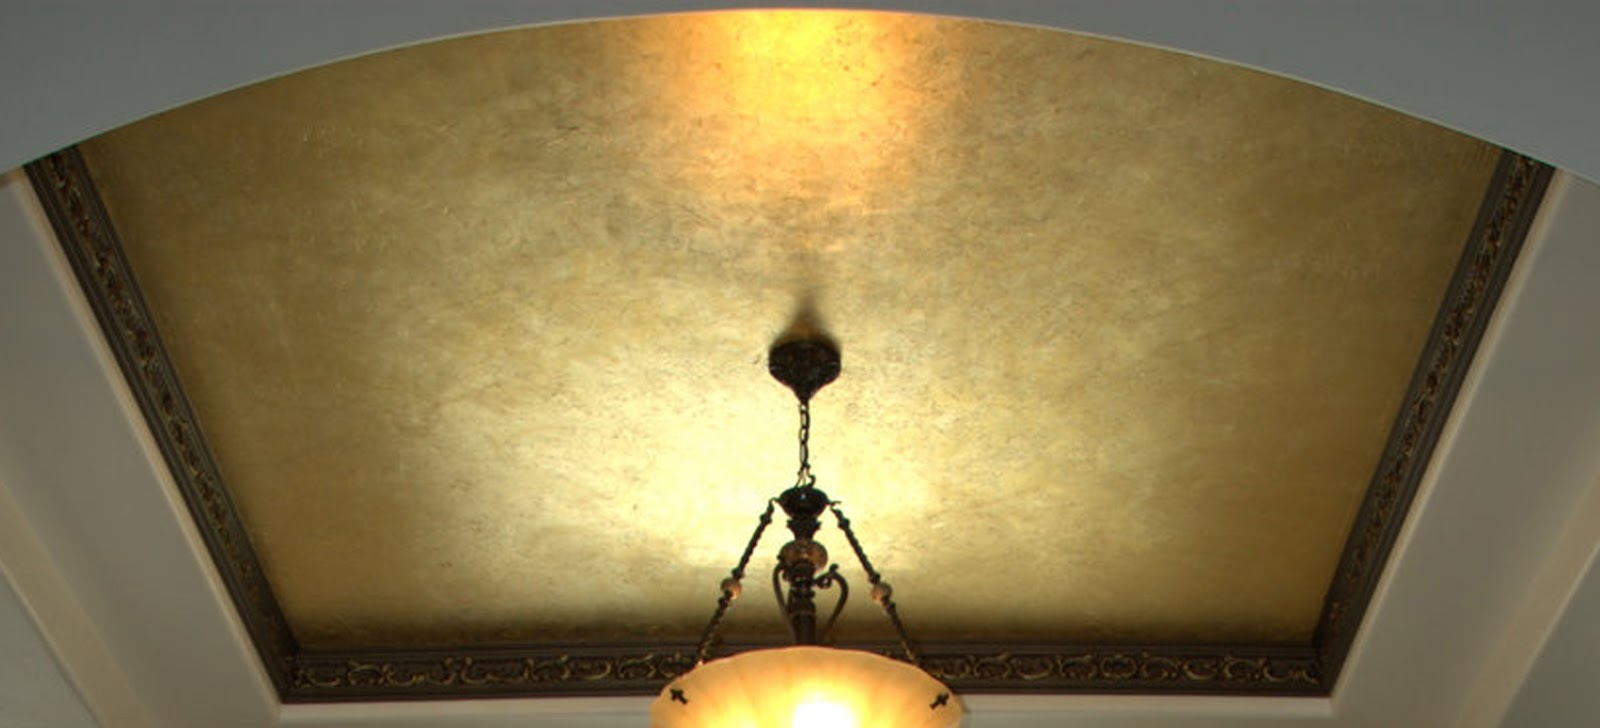 Eye For Design: Decorating With Metallic Gold........Especially At ...